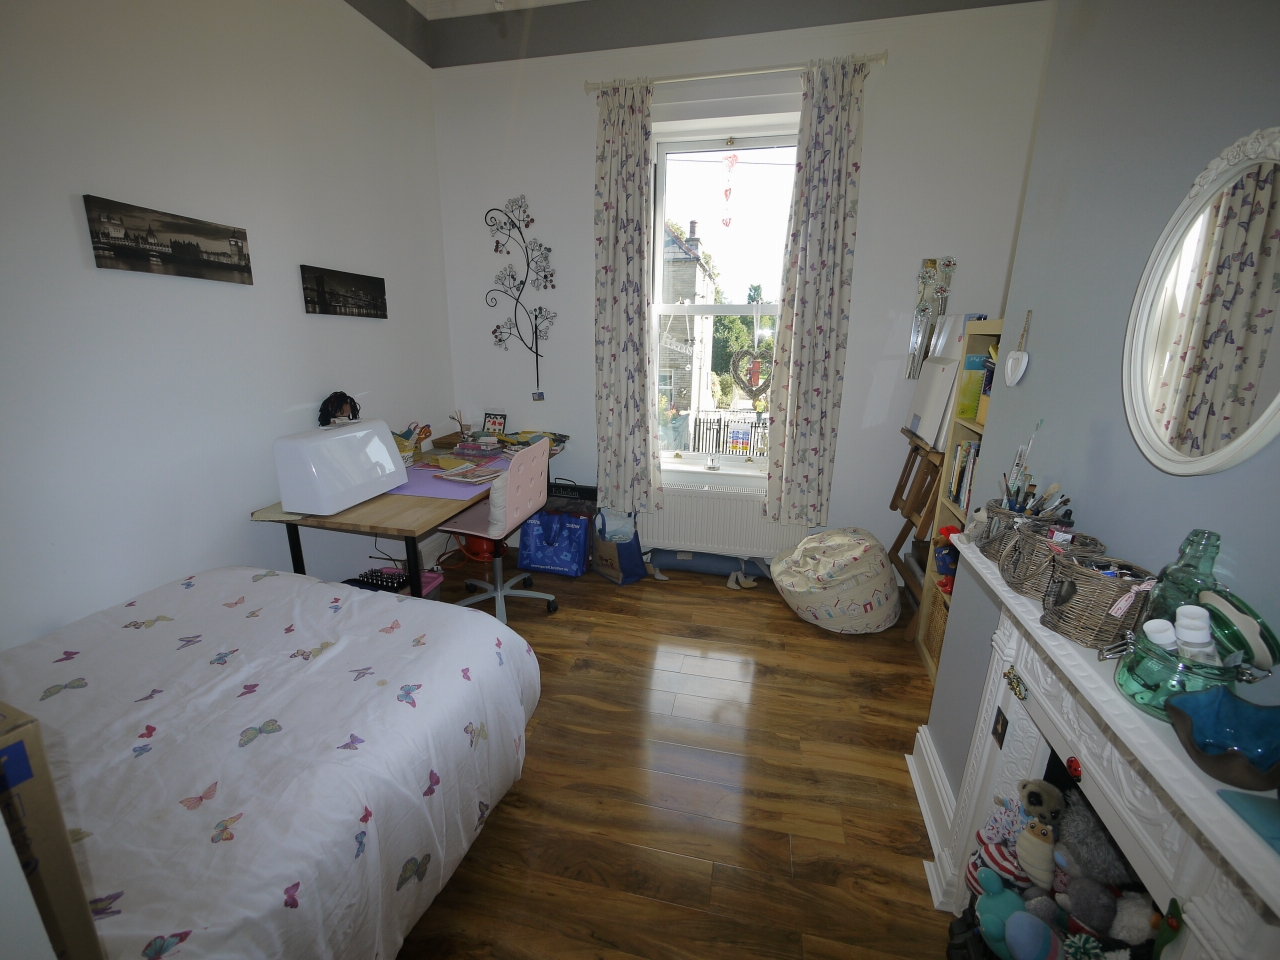 5 bedroom semi-detached house For Sale in Halilfax - Photograph 9.